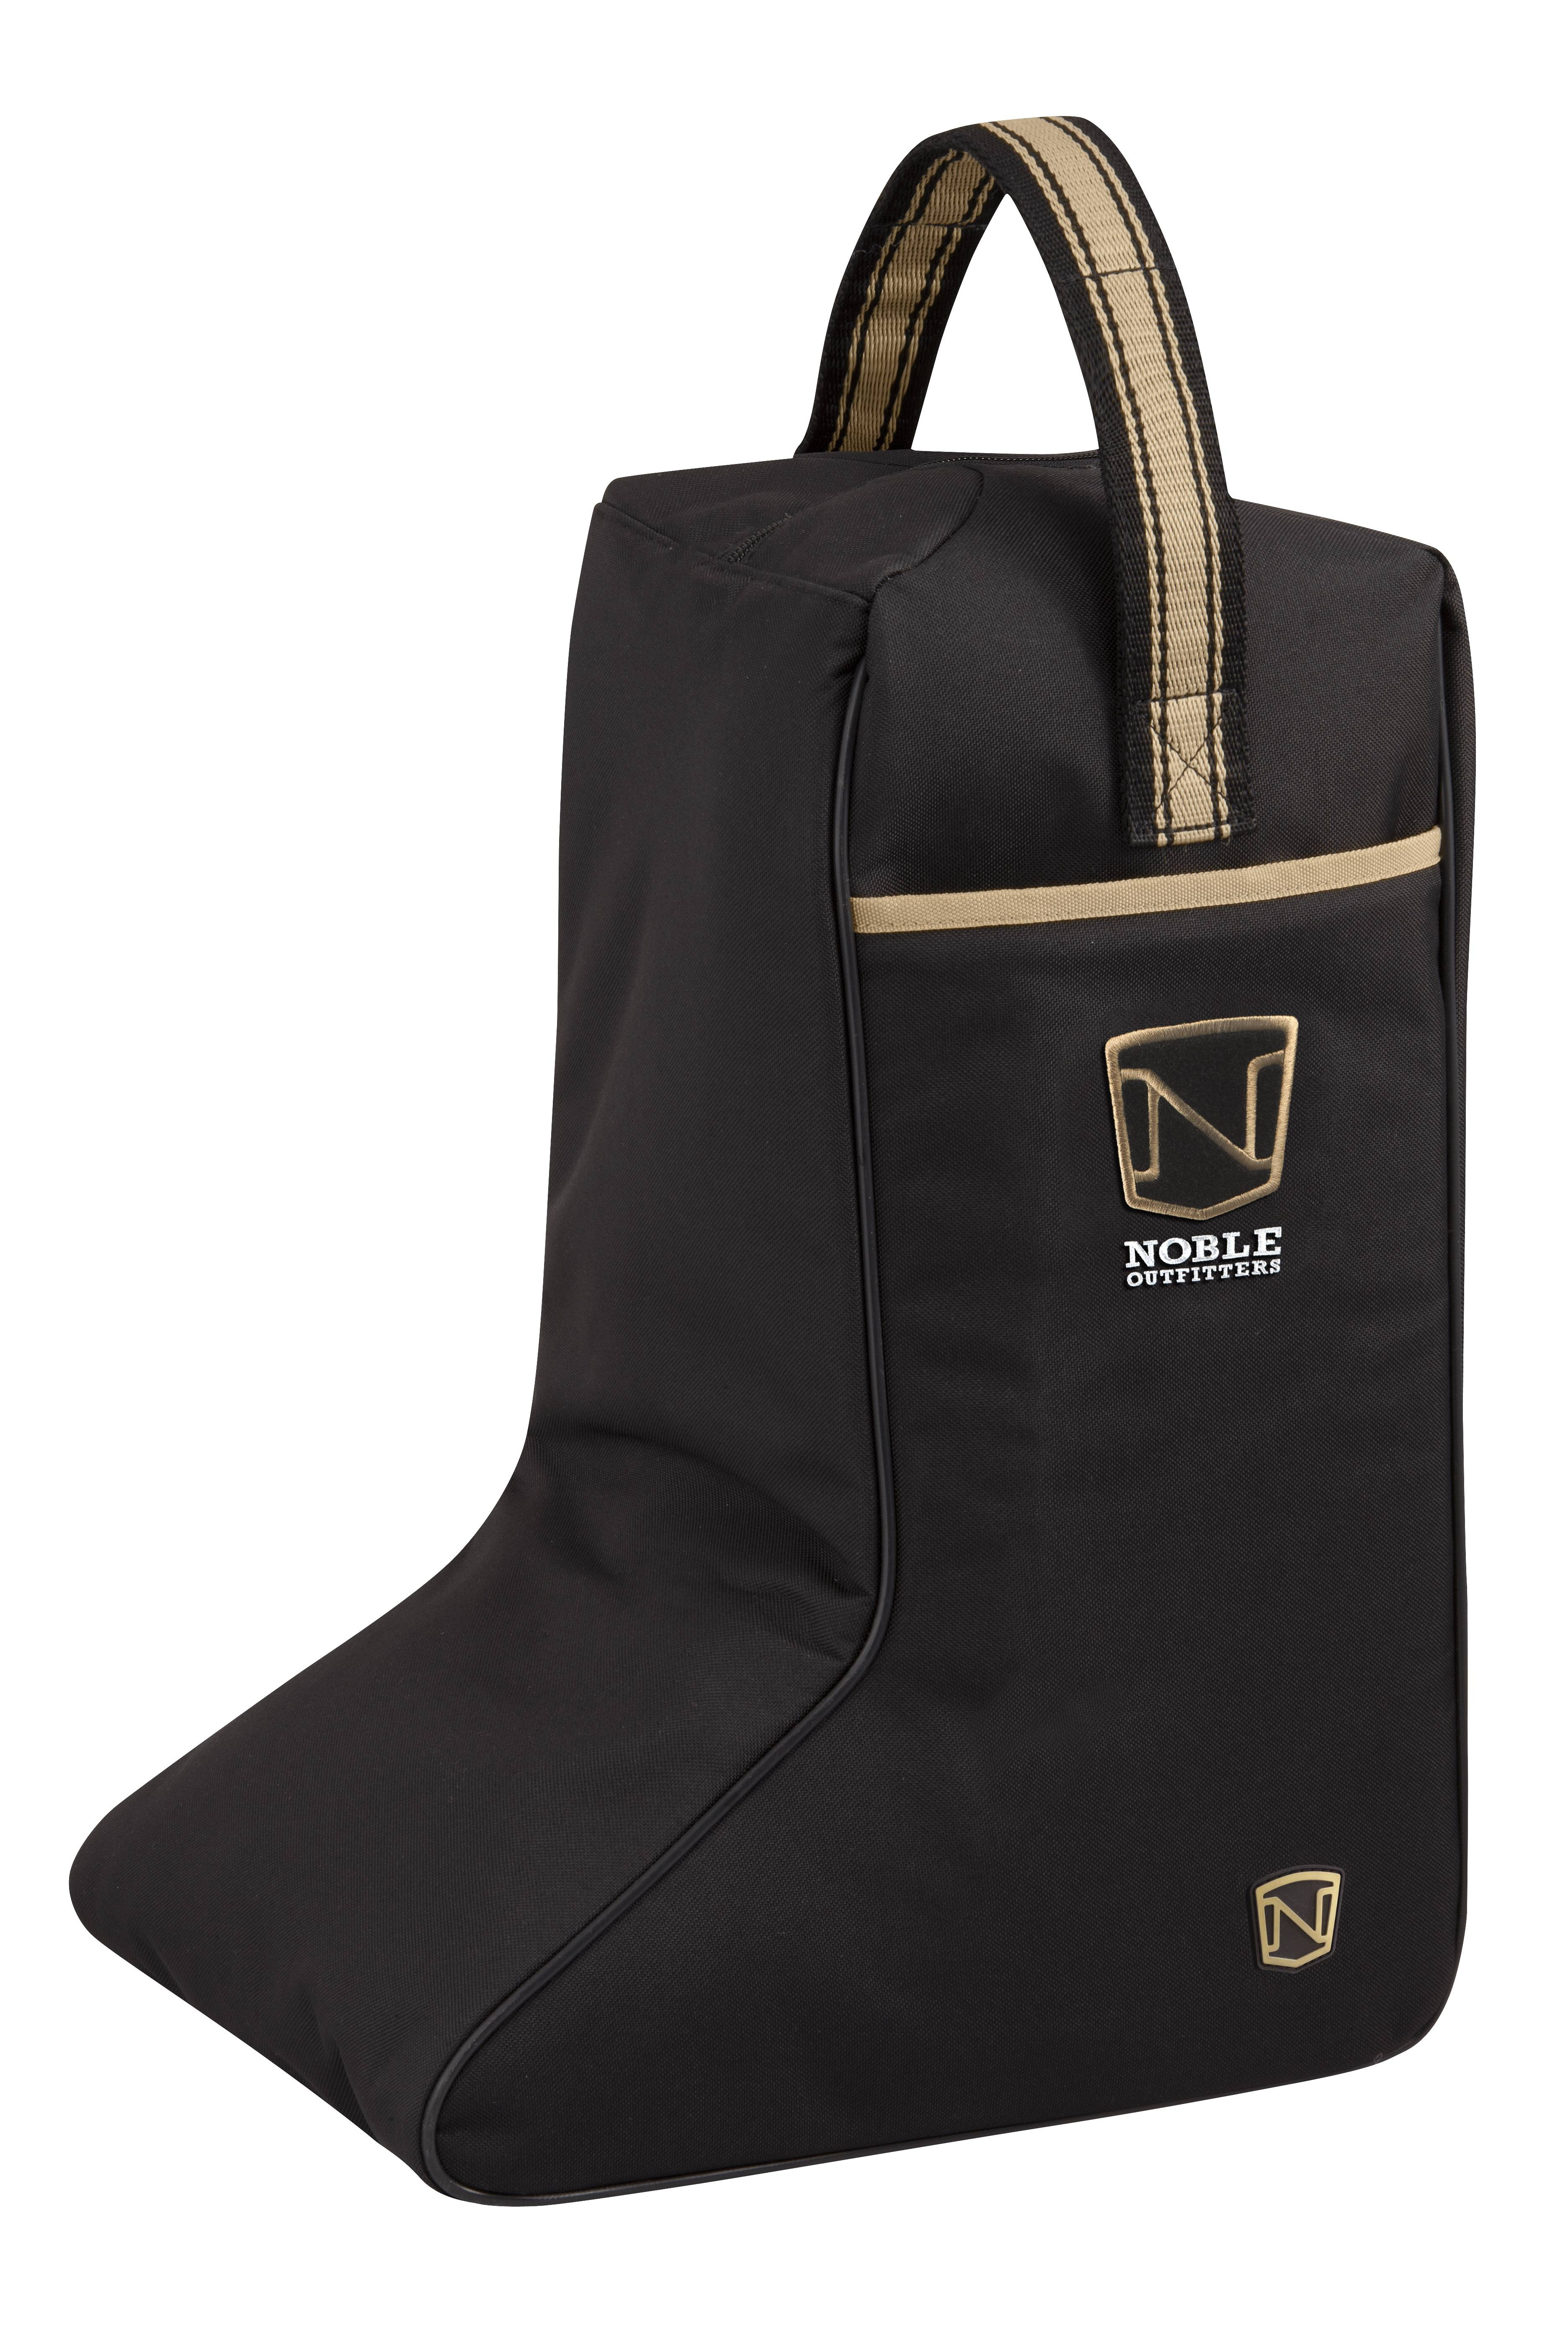 Noble Outfitters Just for Kicks Boot Bag Short